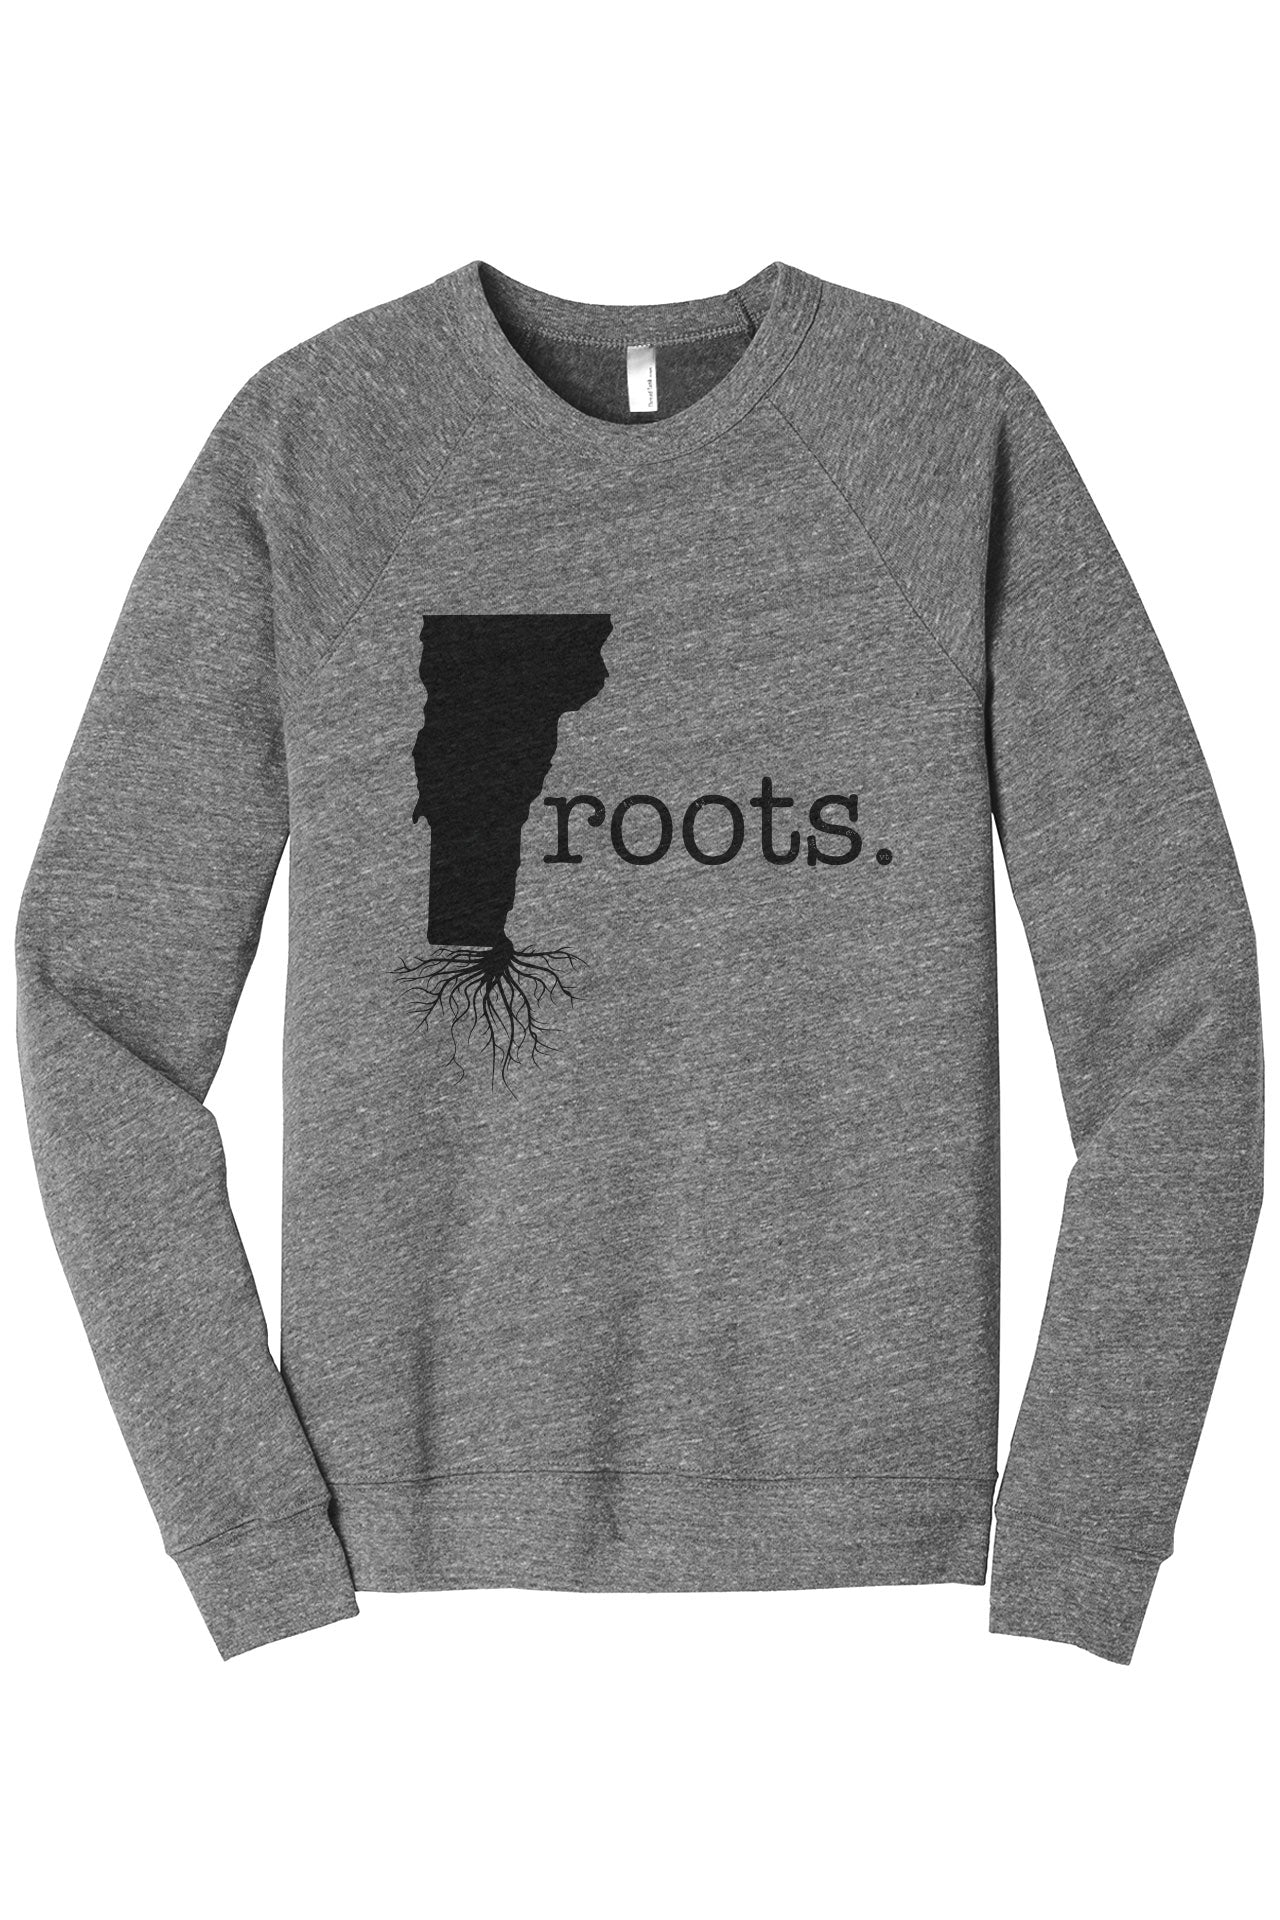 Home Roots State Vermont VT Cozy Unisex Fleece Longsleeves Sweater Heather Grey FRONT